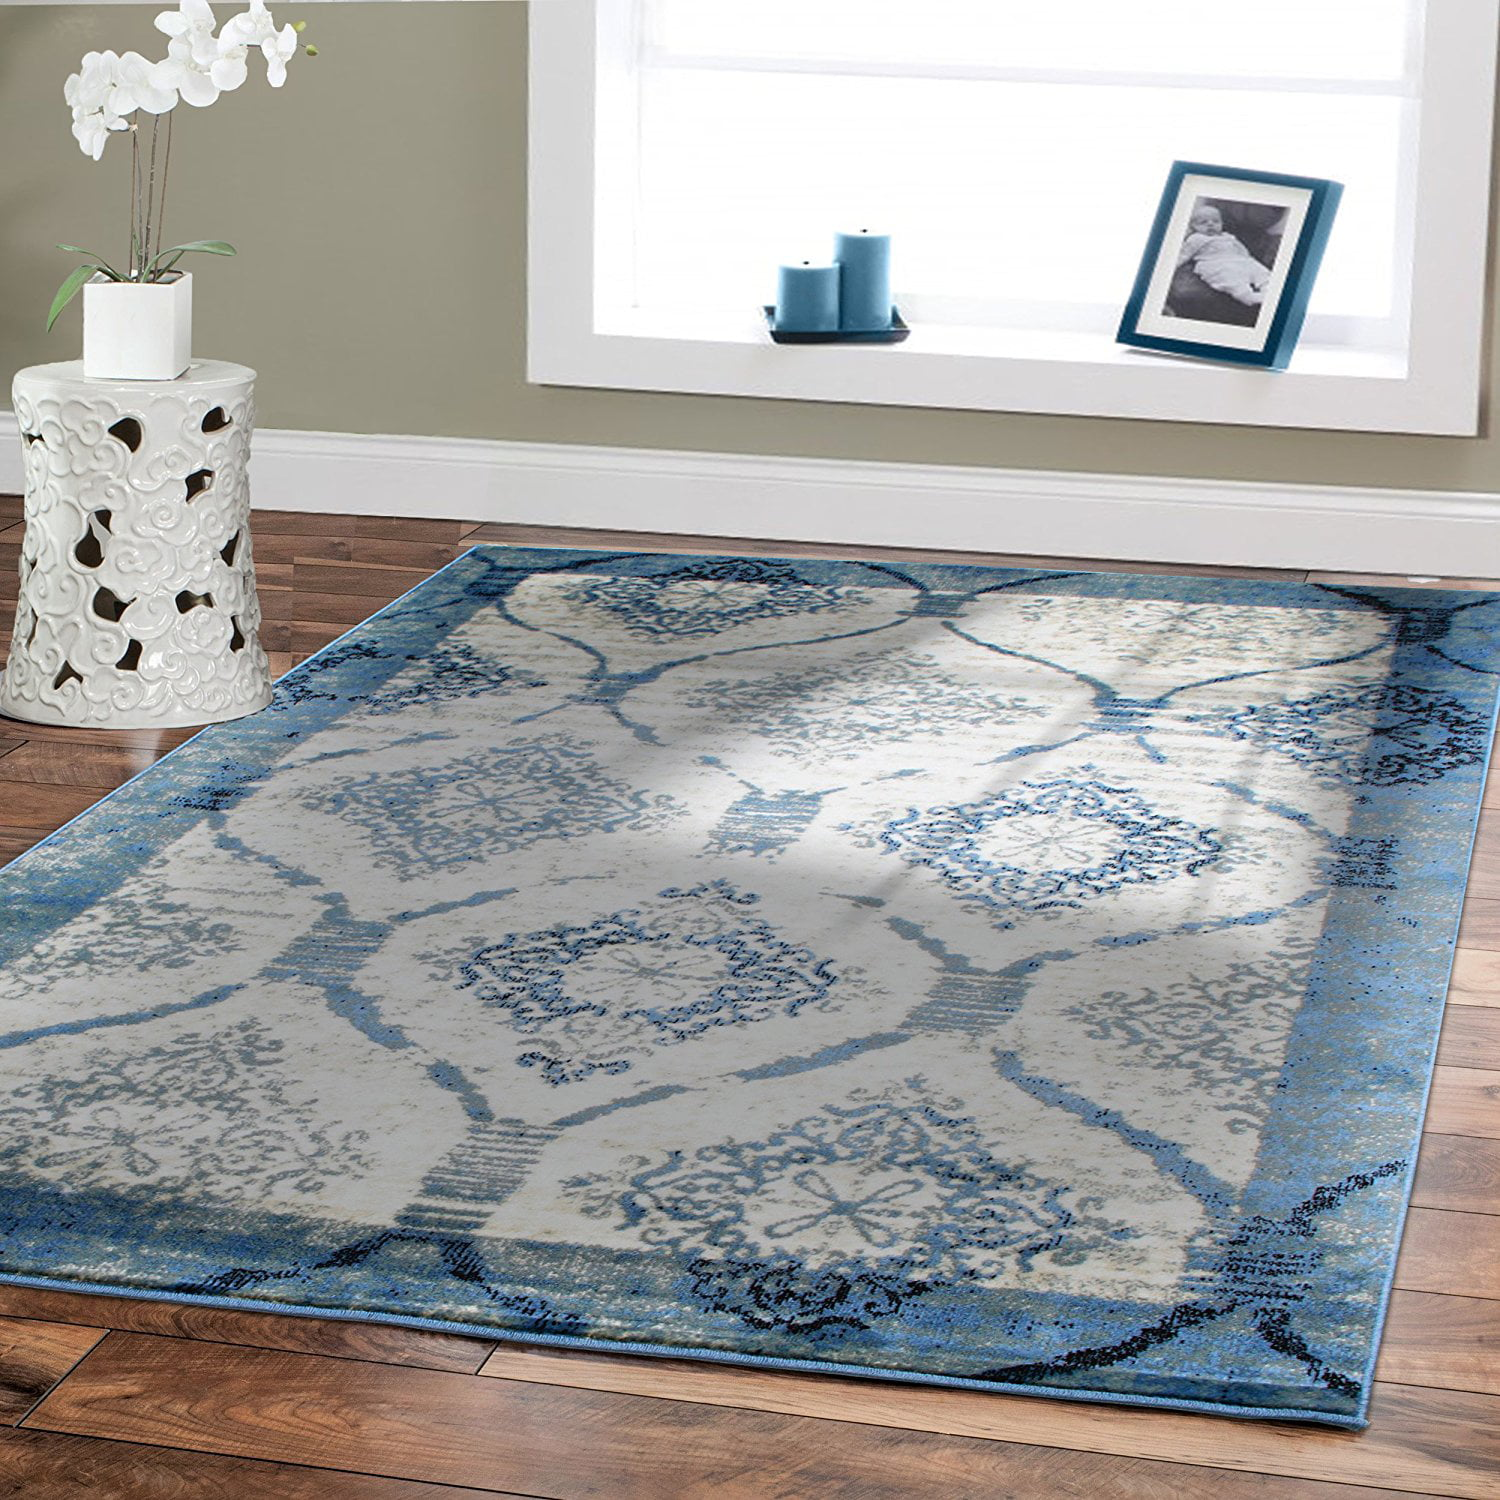 Area Rugs For Living Room 8x10 Under150 Blue Dining Room Rugs For